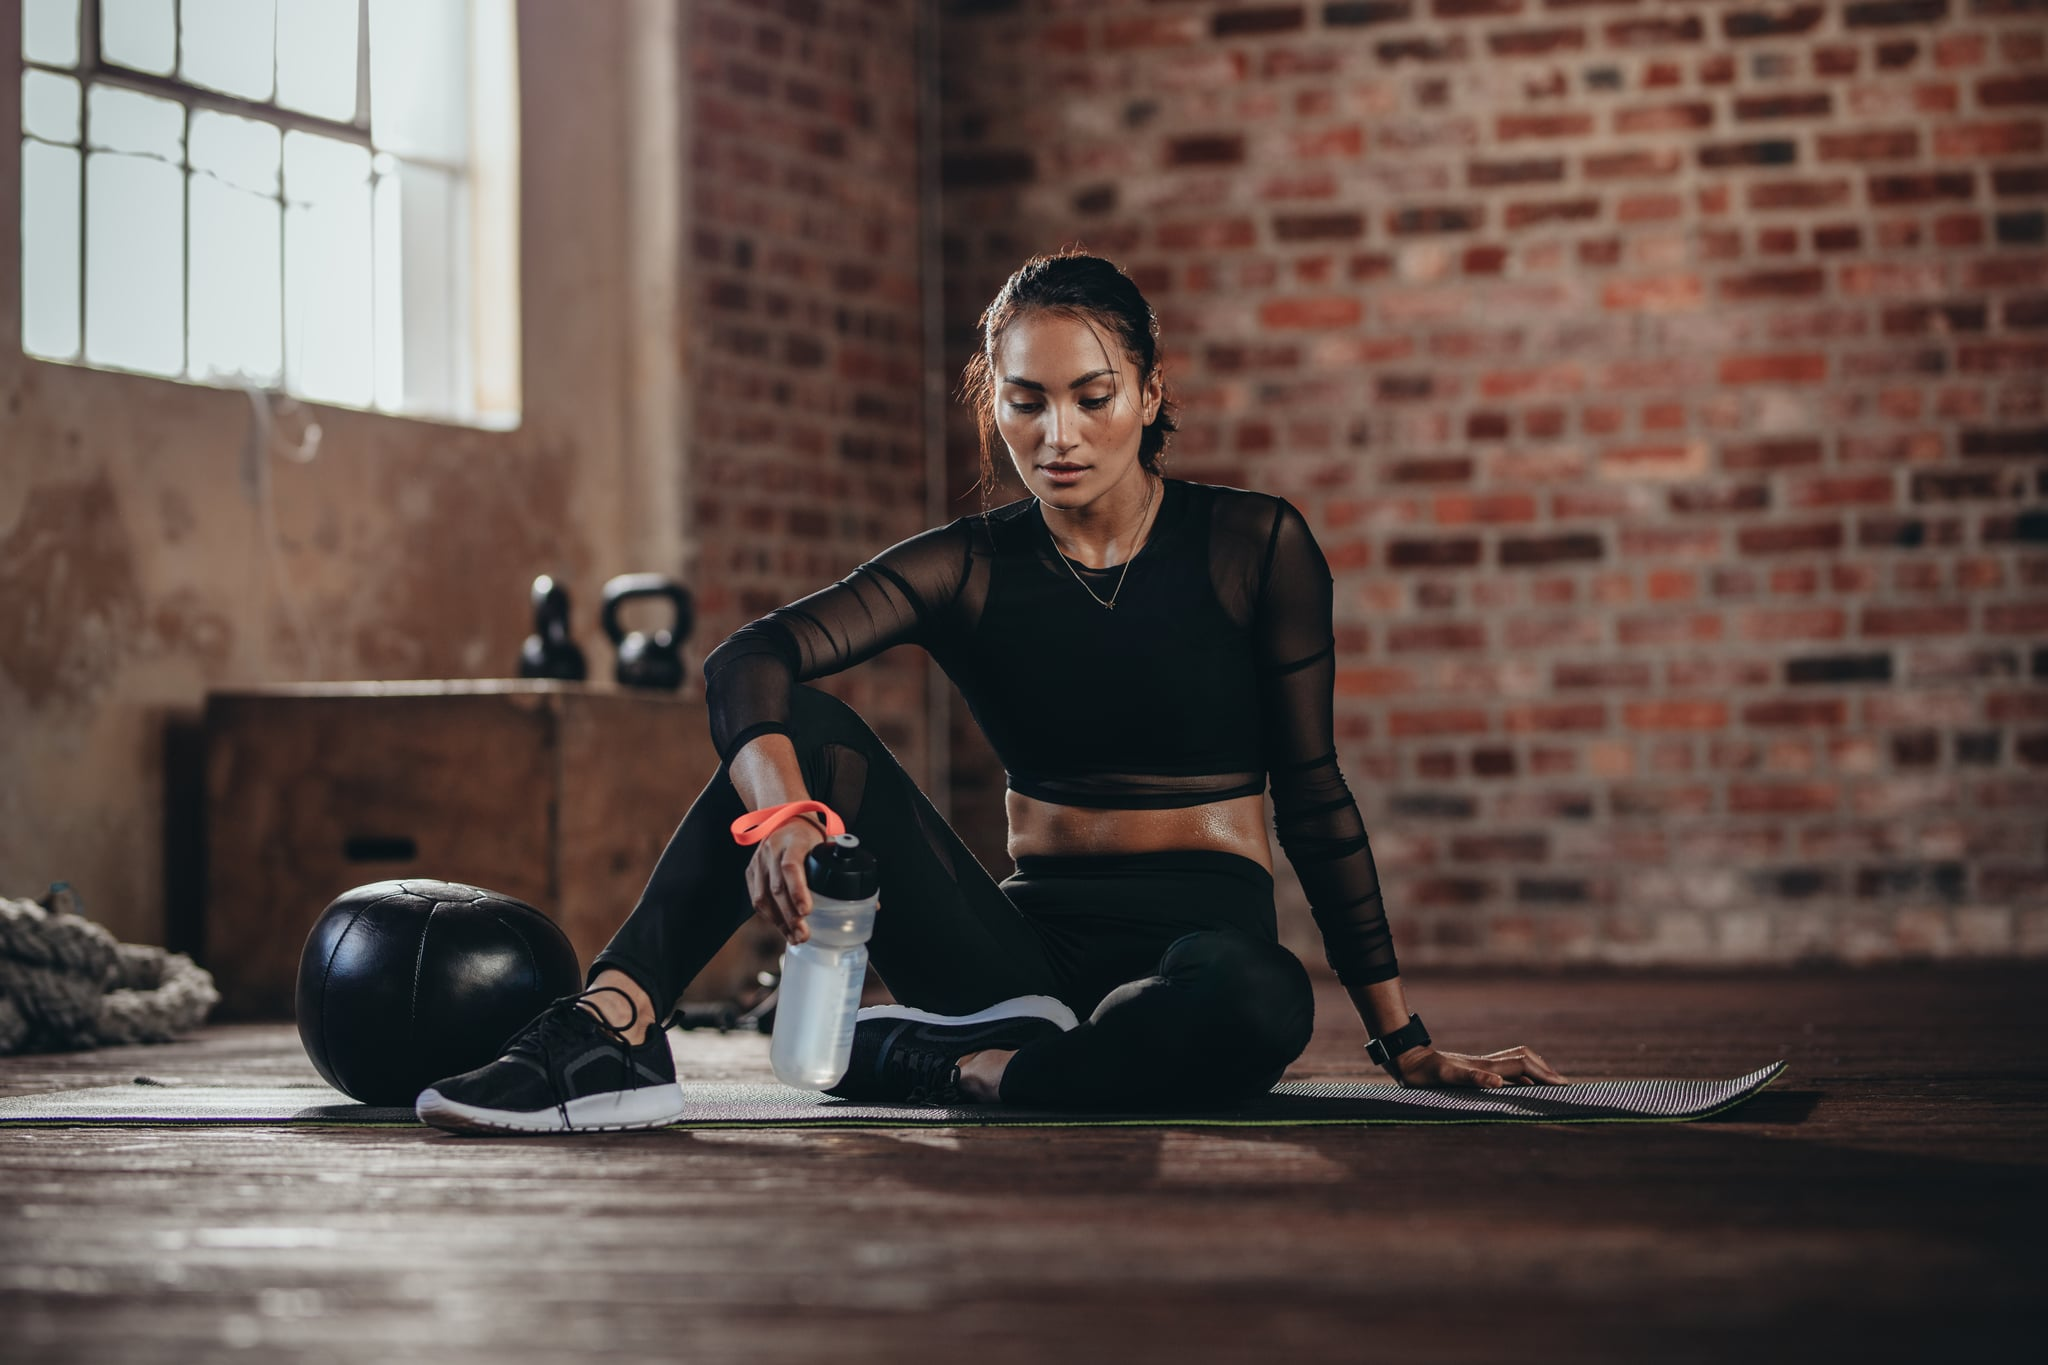 Portrait of a fit young woman taking a break in the gym. Female sitting on fitness mat with a water bottle looking down.